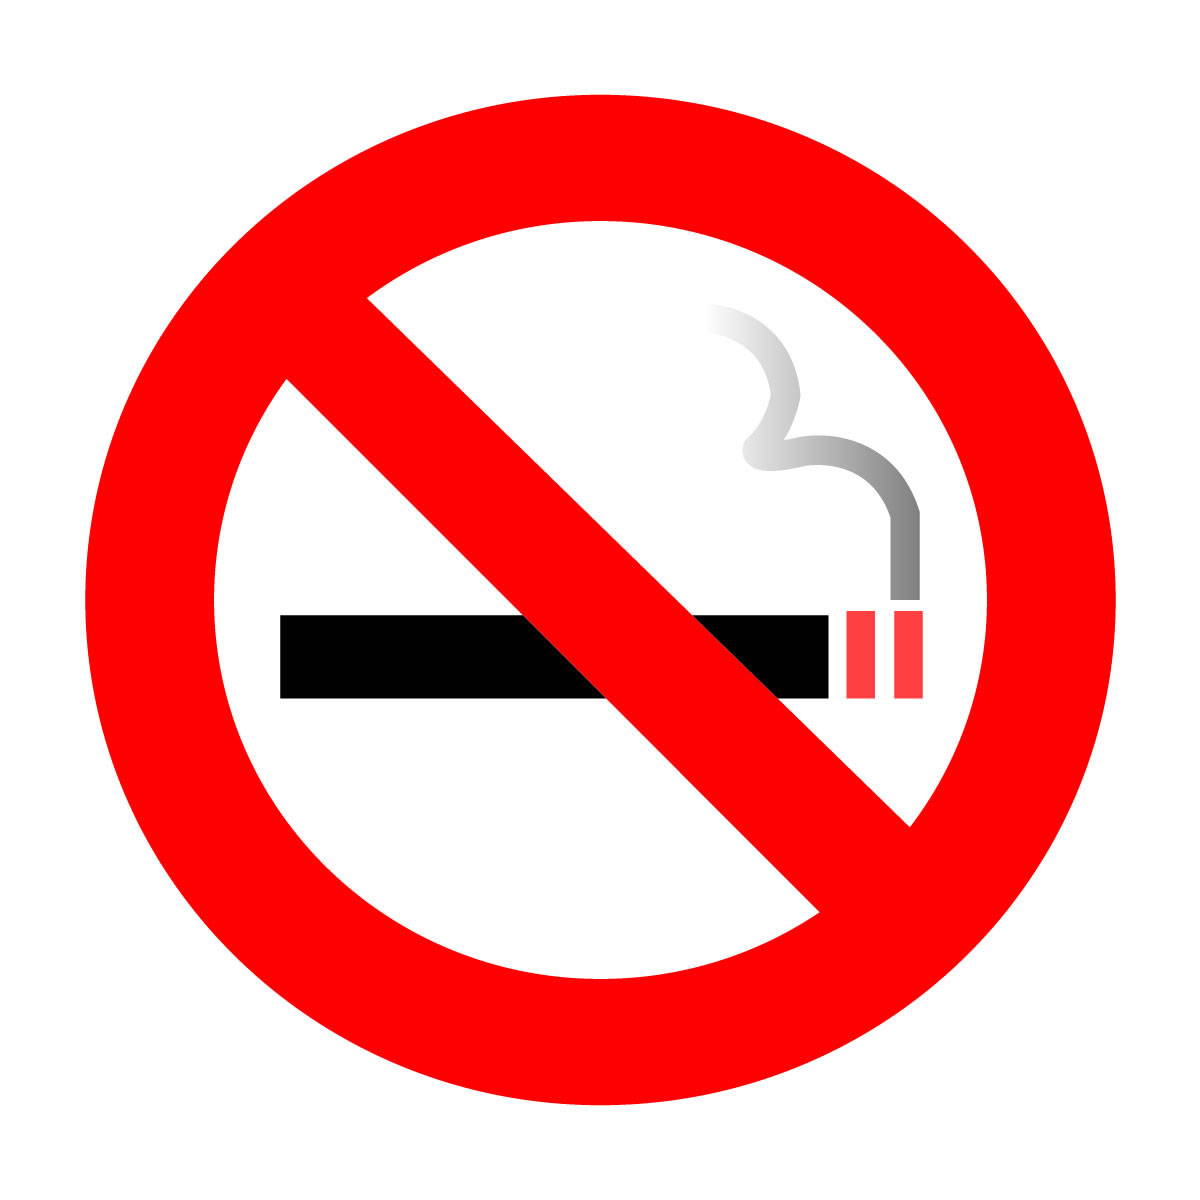 no smoking ban feeling lonely in a relationship